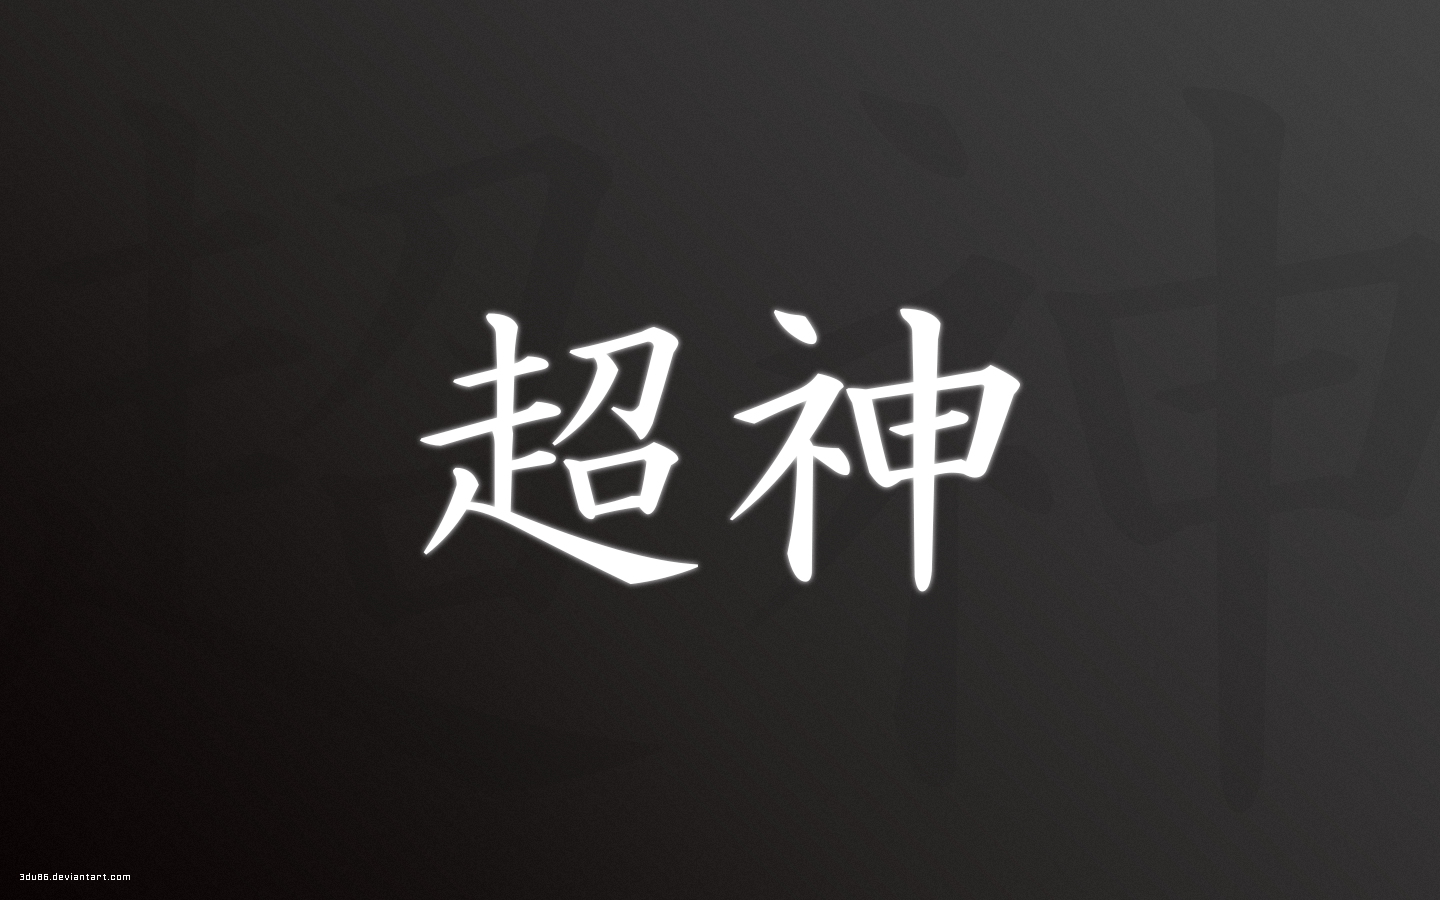 Japanese Kanji Symbols Wallpapers Made By Myself 1366 X 780